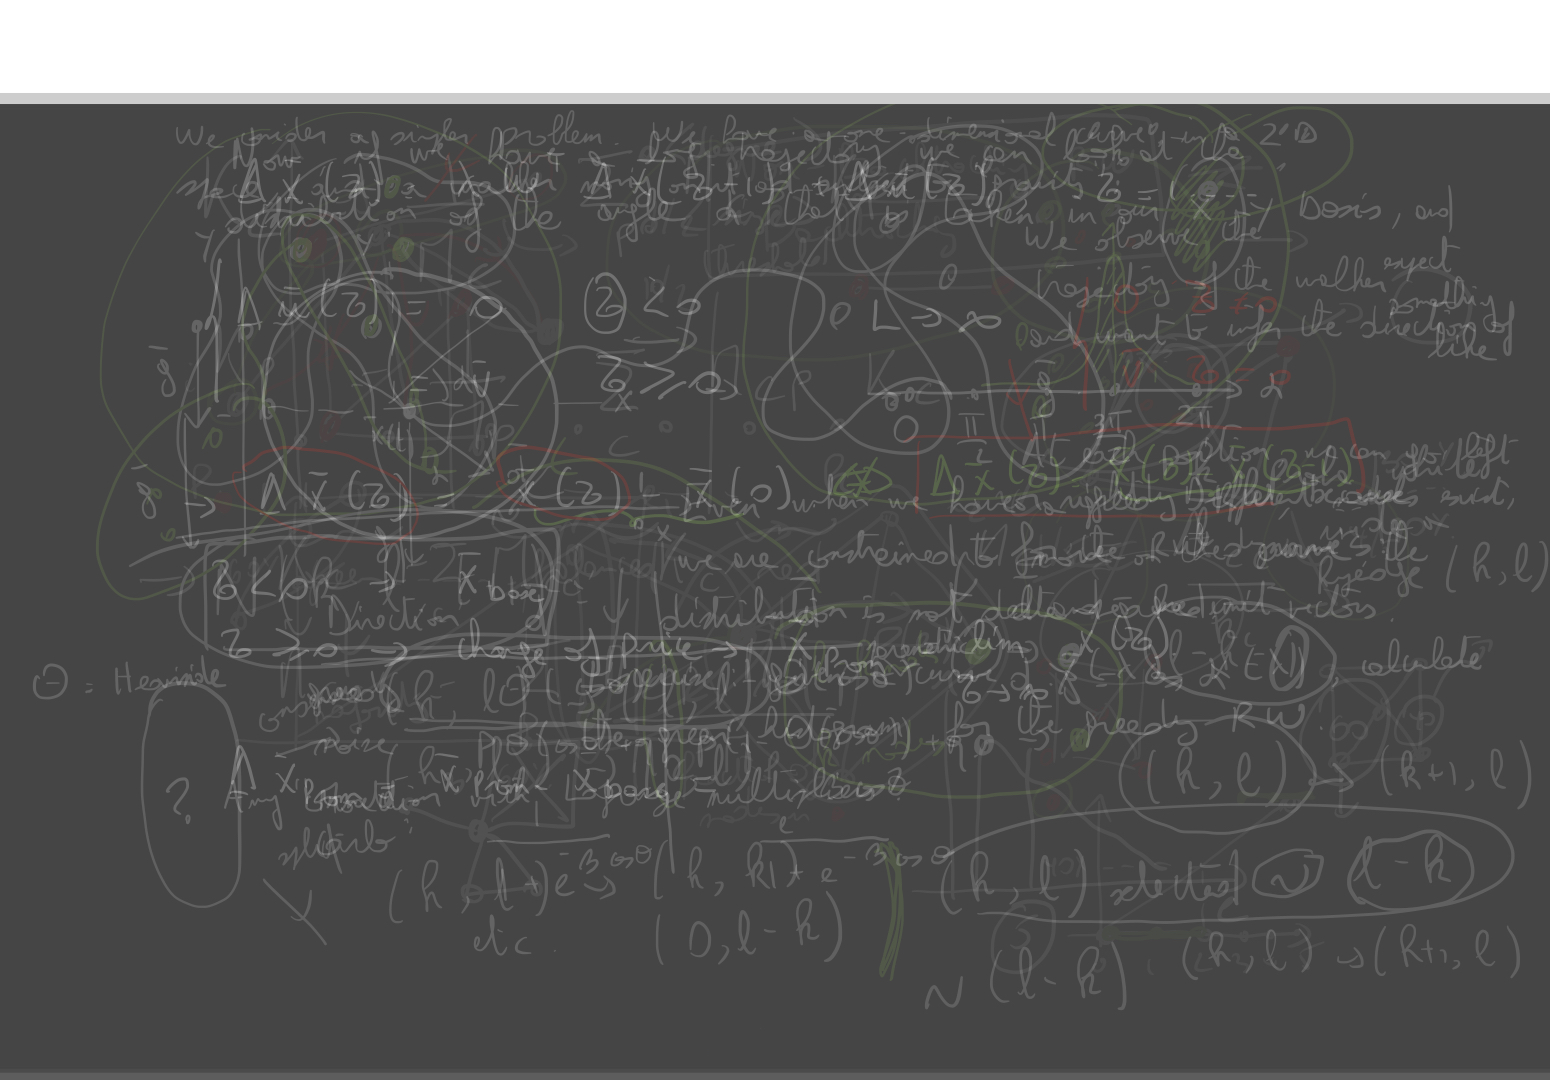 A blackboard with multiple layers of work overlaid.